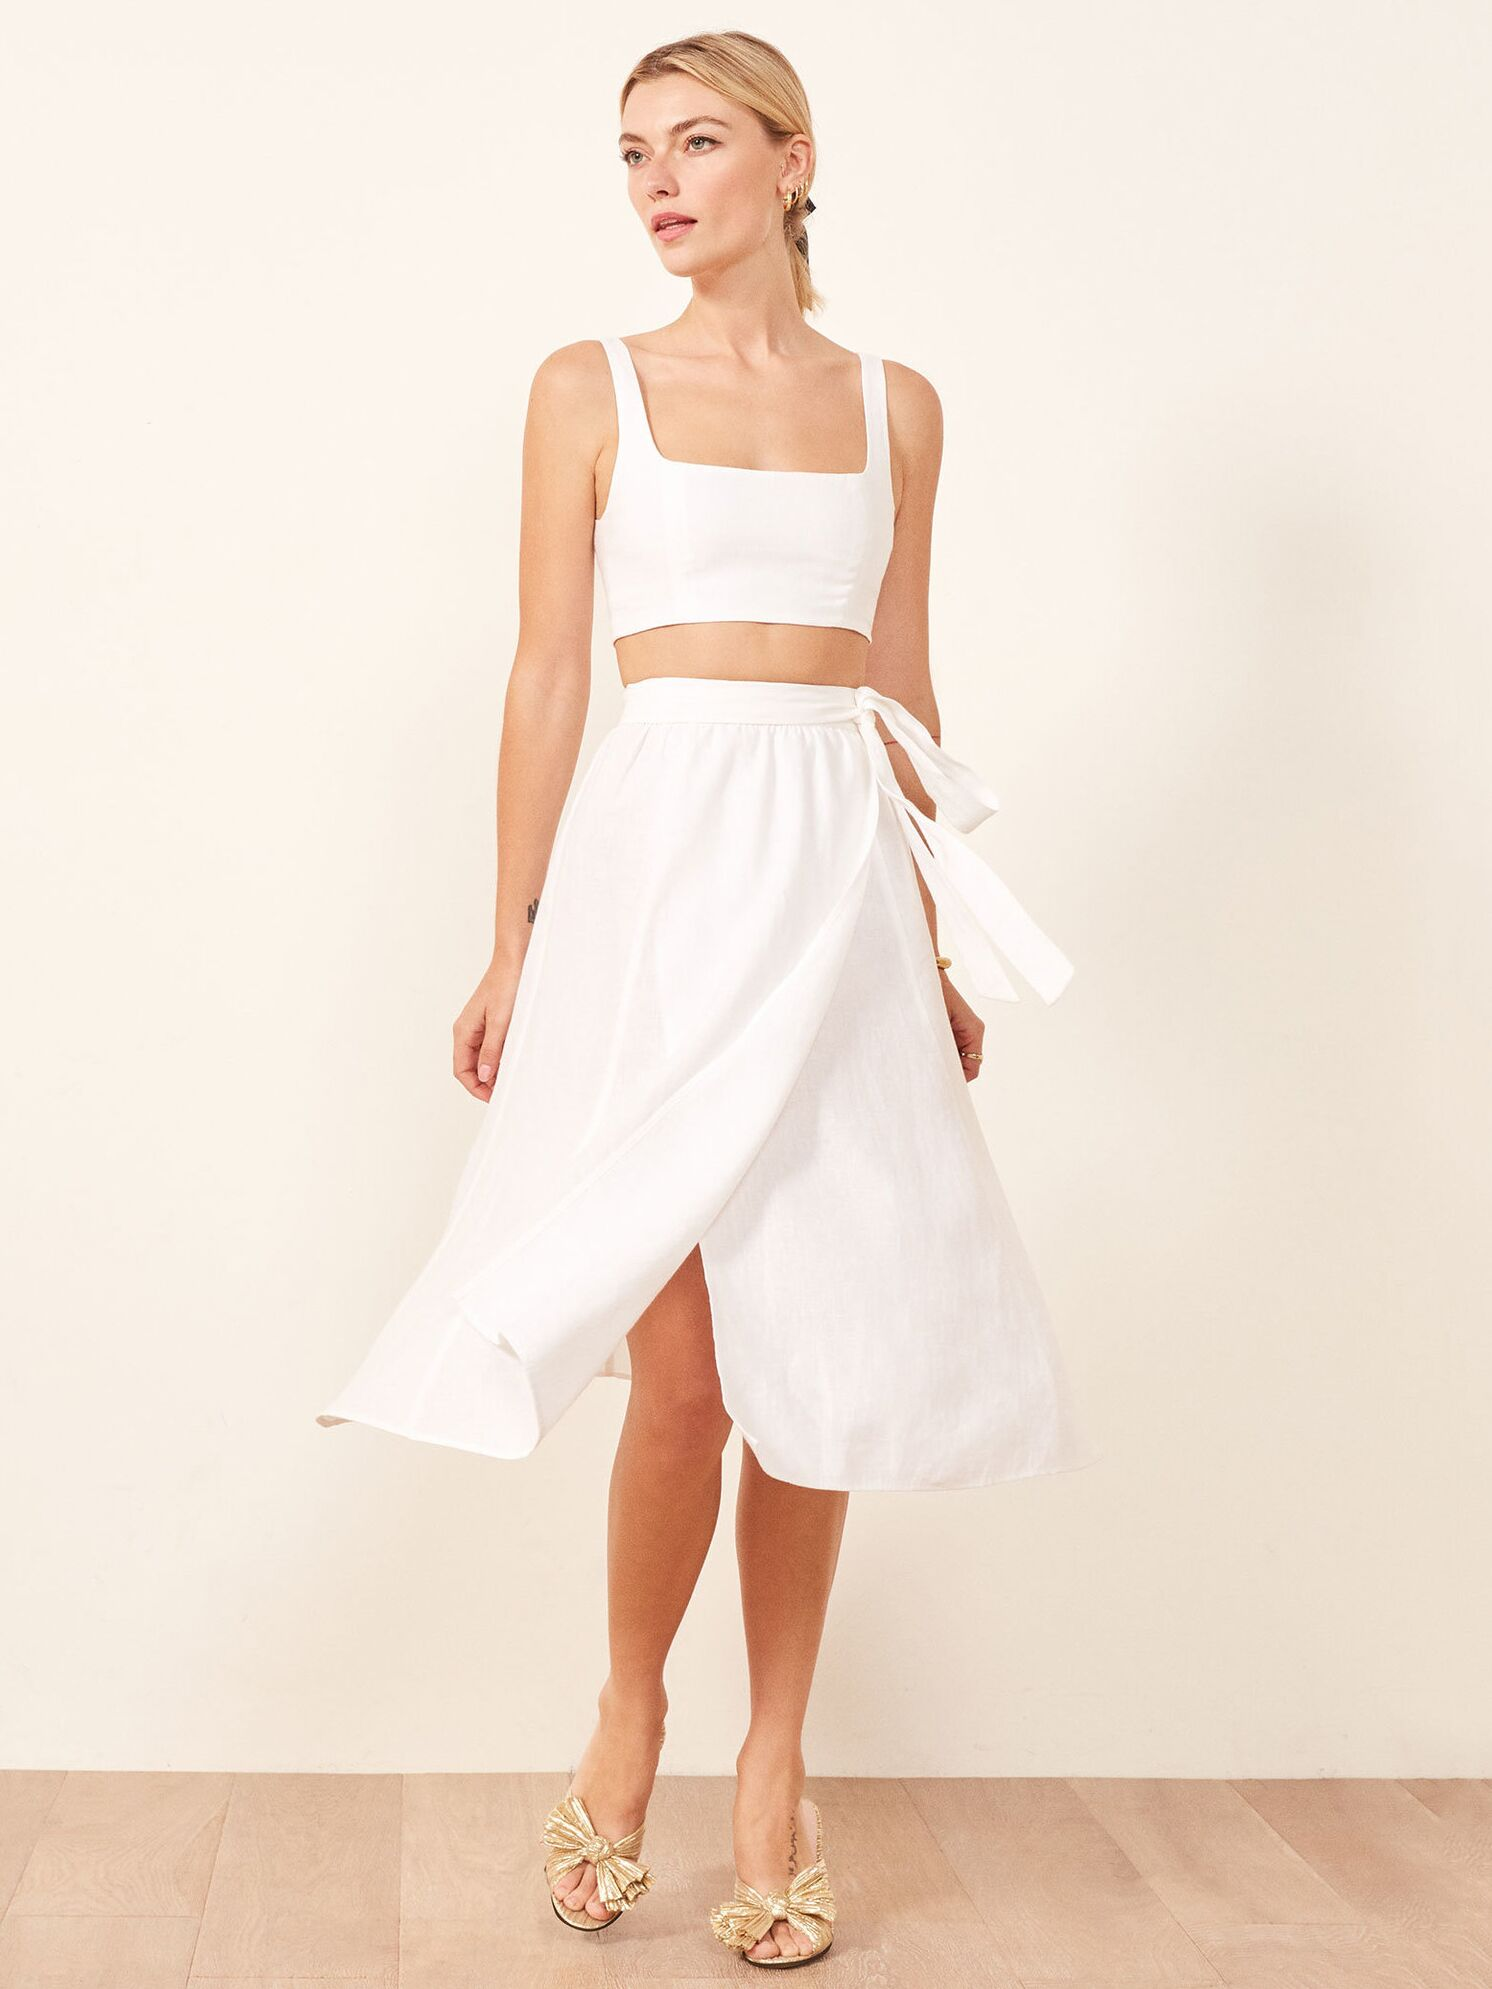 51726e6faed 9 White-Hot Bachelorette Party Dresses You Can Shop Now